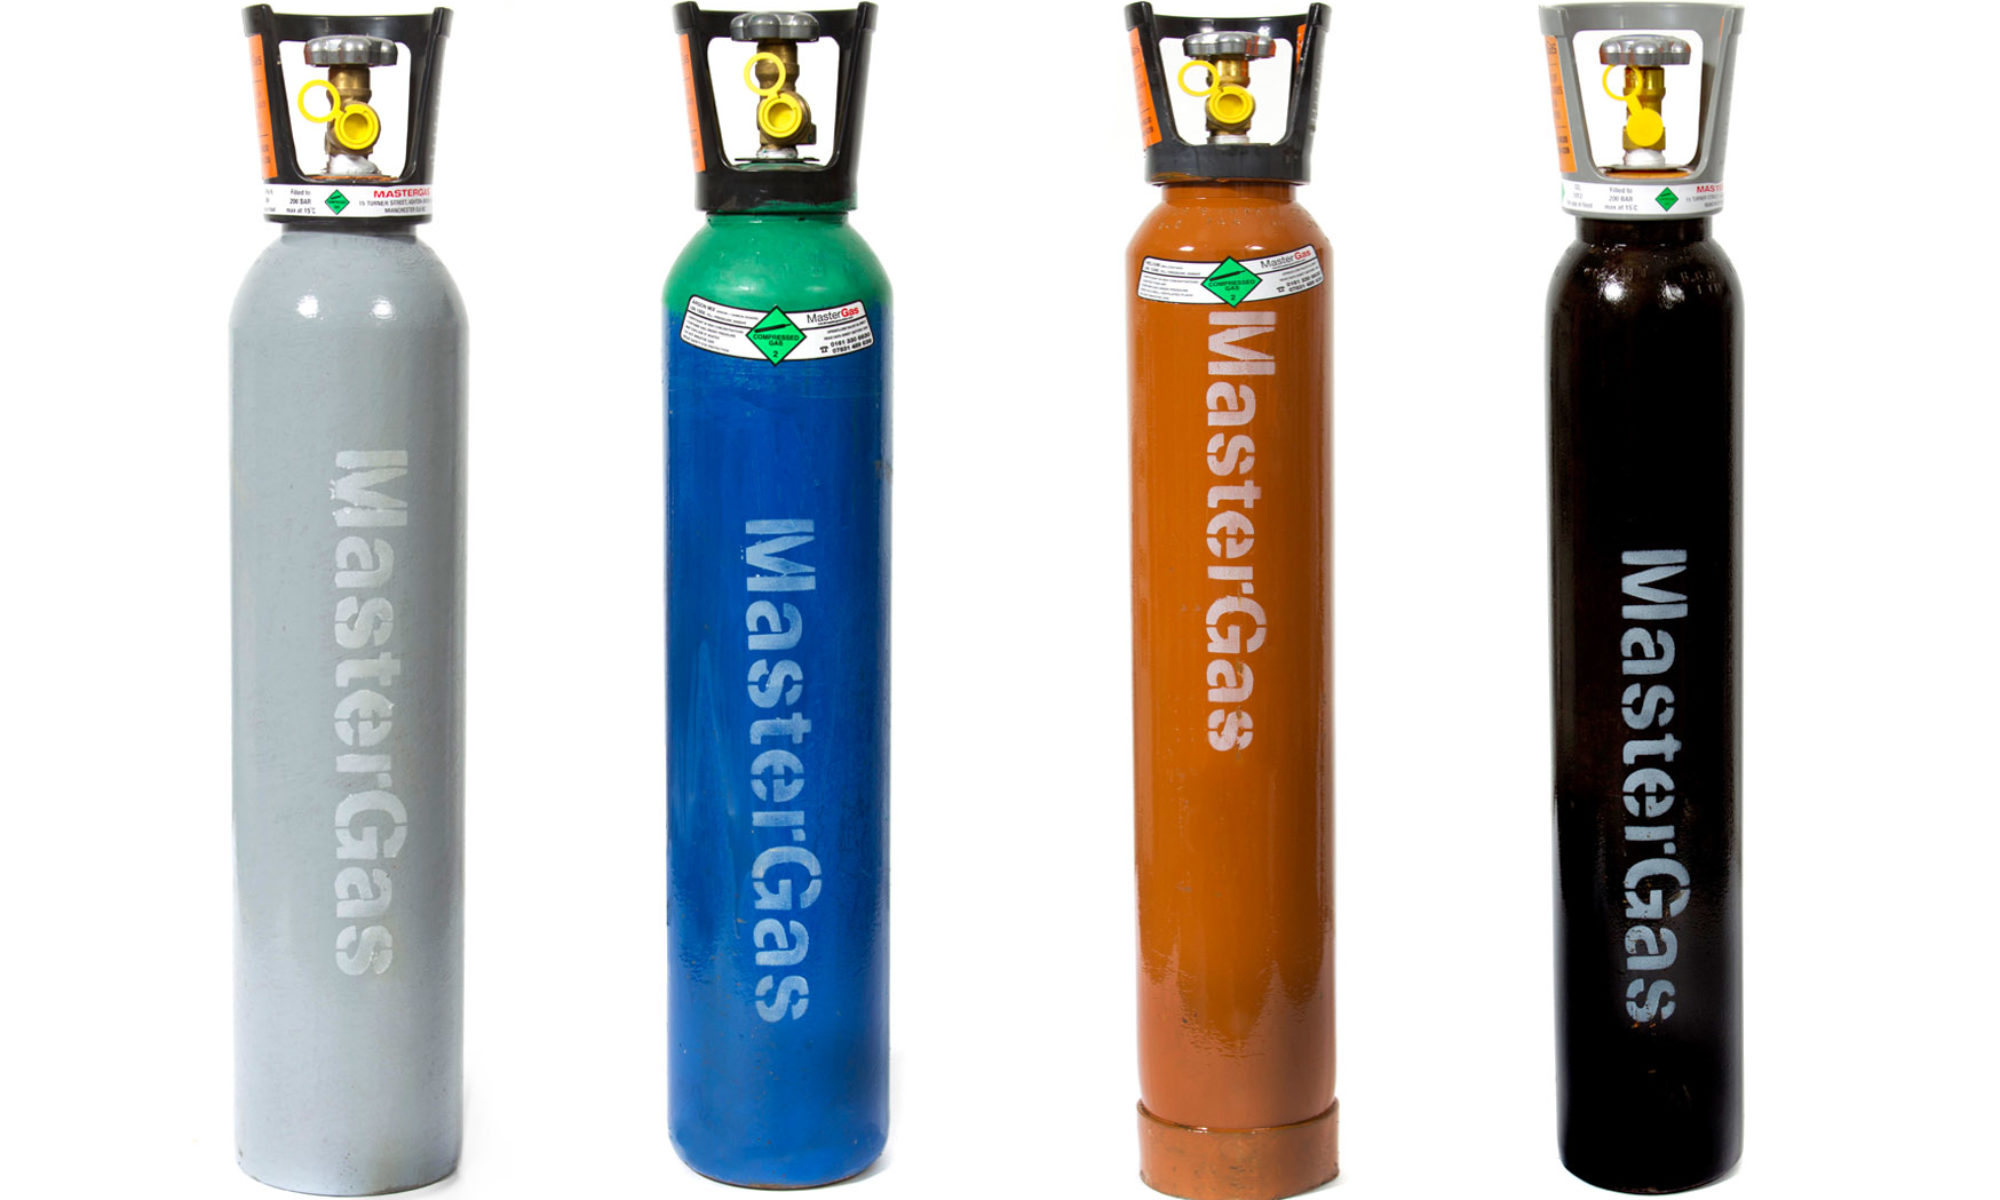 Providers of beverage gases, helium and welding gases